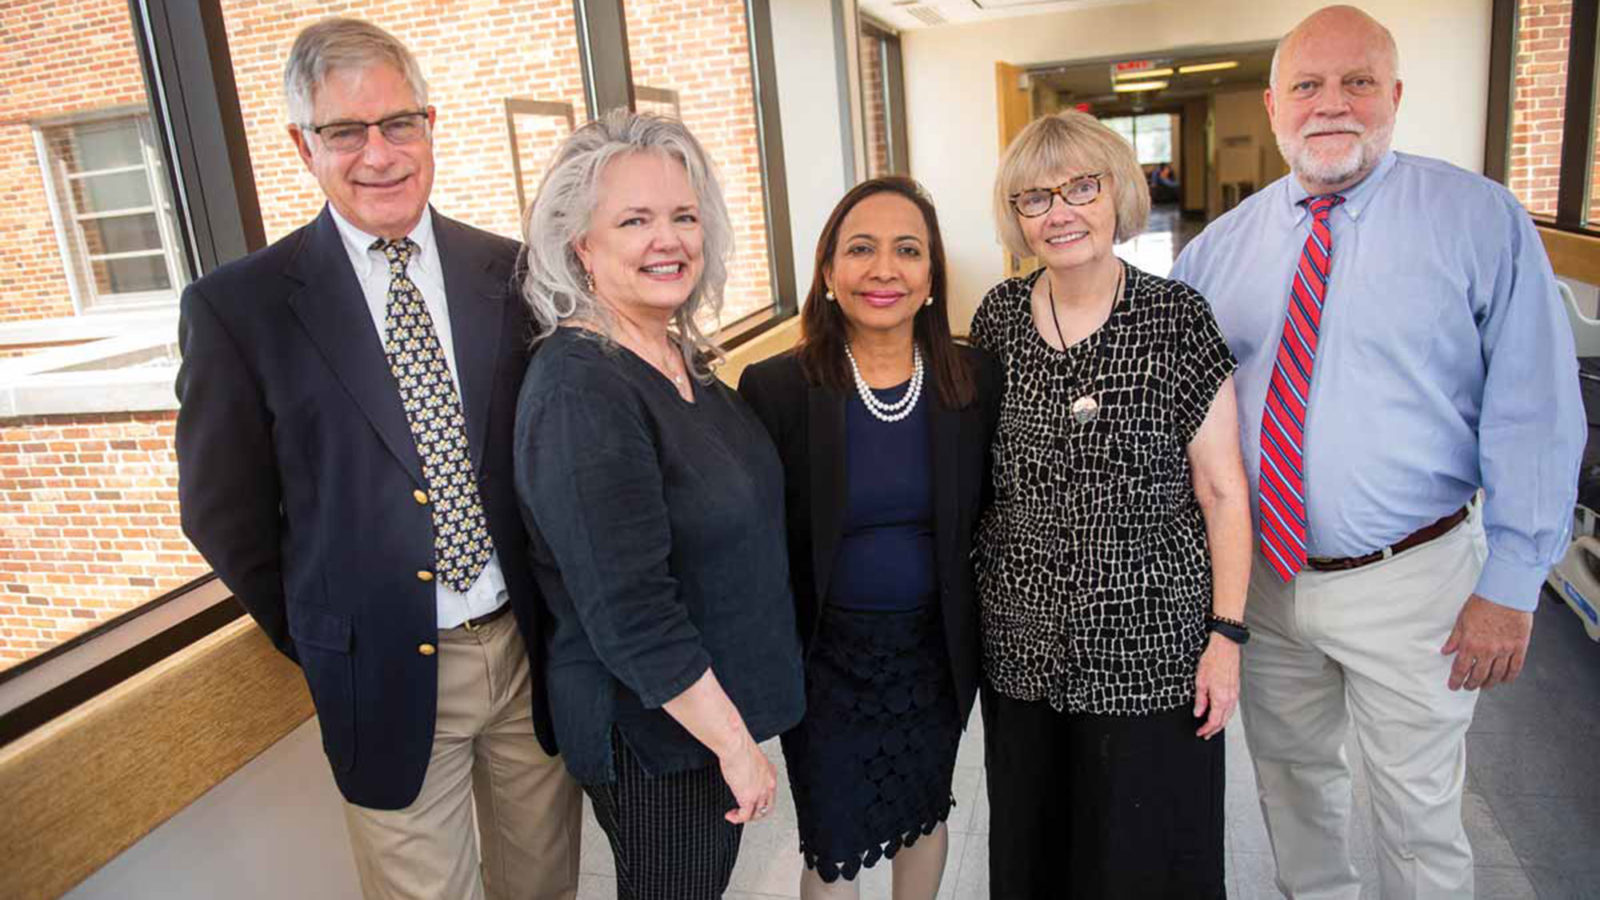 Phil Pierce, Ella Curry, Princy Kumar, Mary Young and Chip Read stand together near windows in a building.